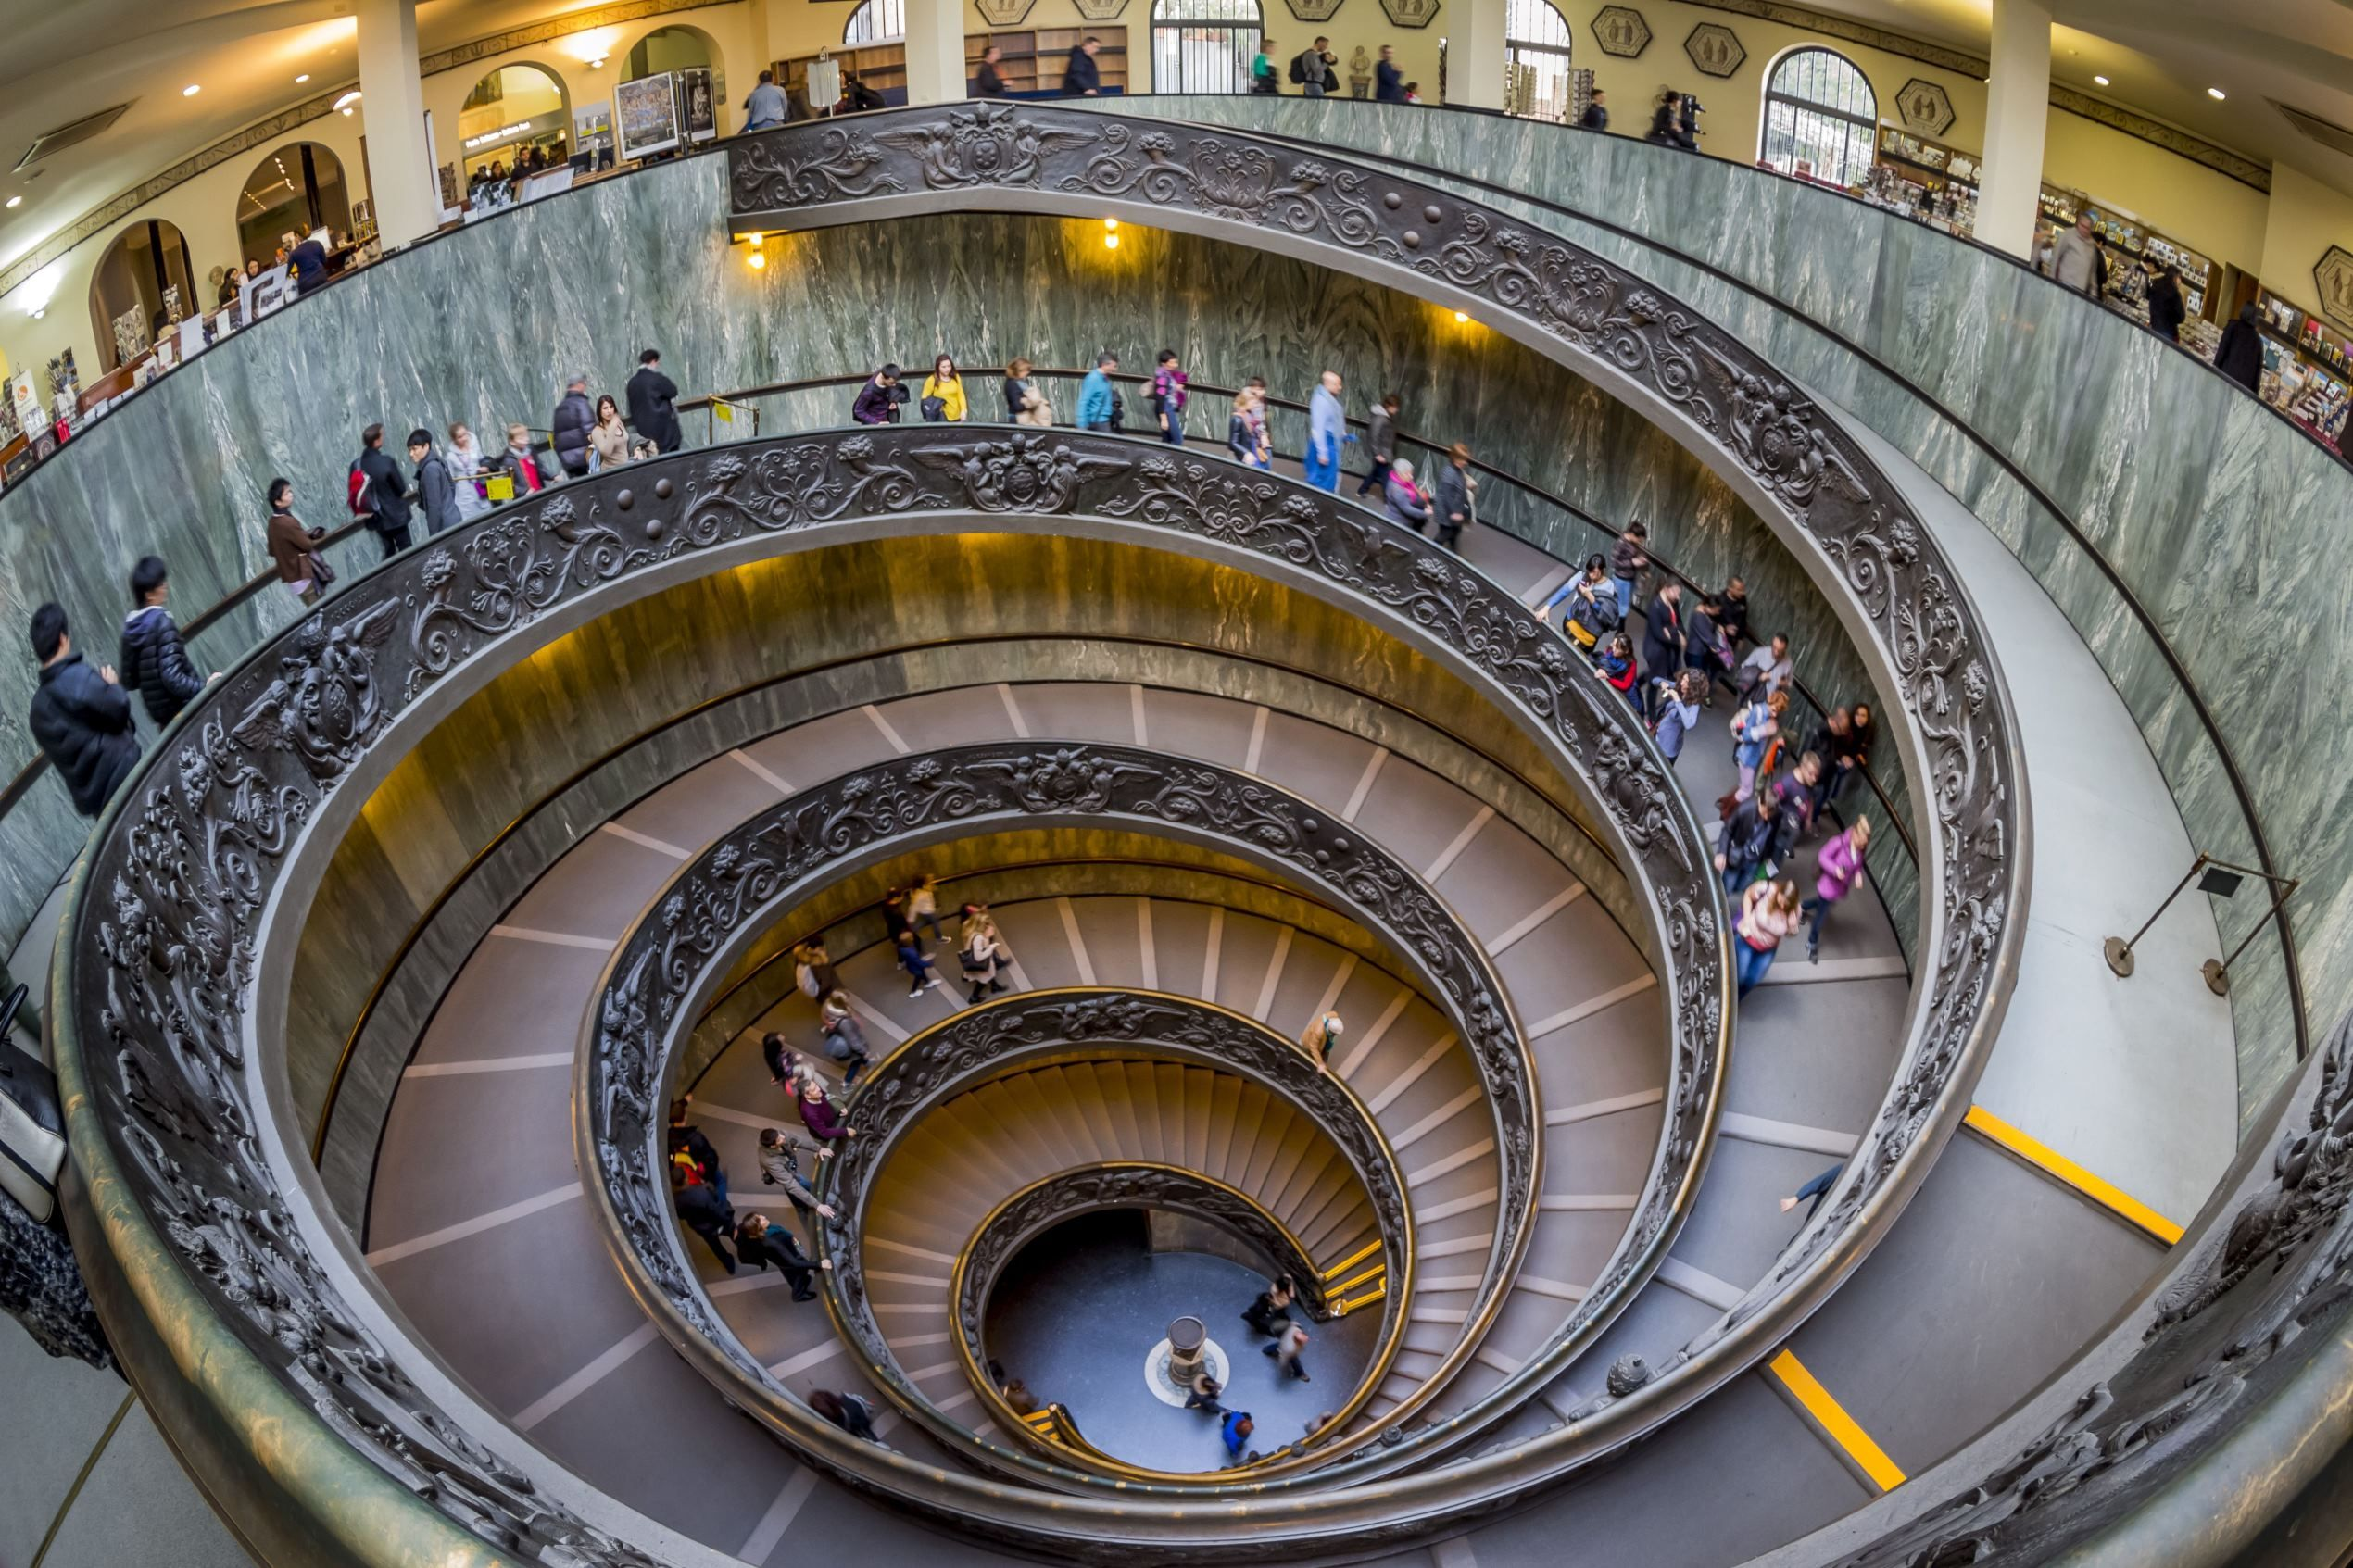 Best Spiral Staircase In Vatican Museum This Exquisite Double 400 x 300